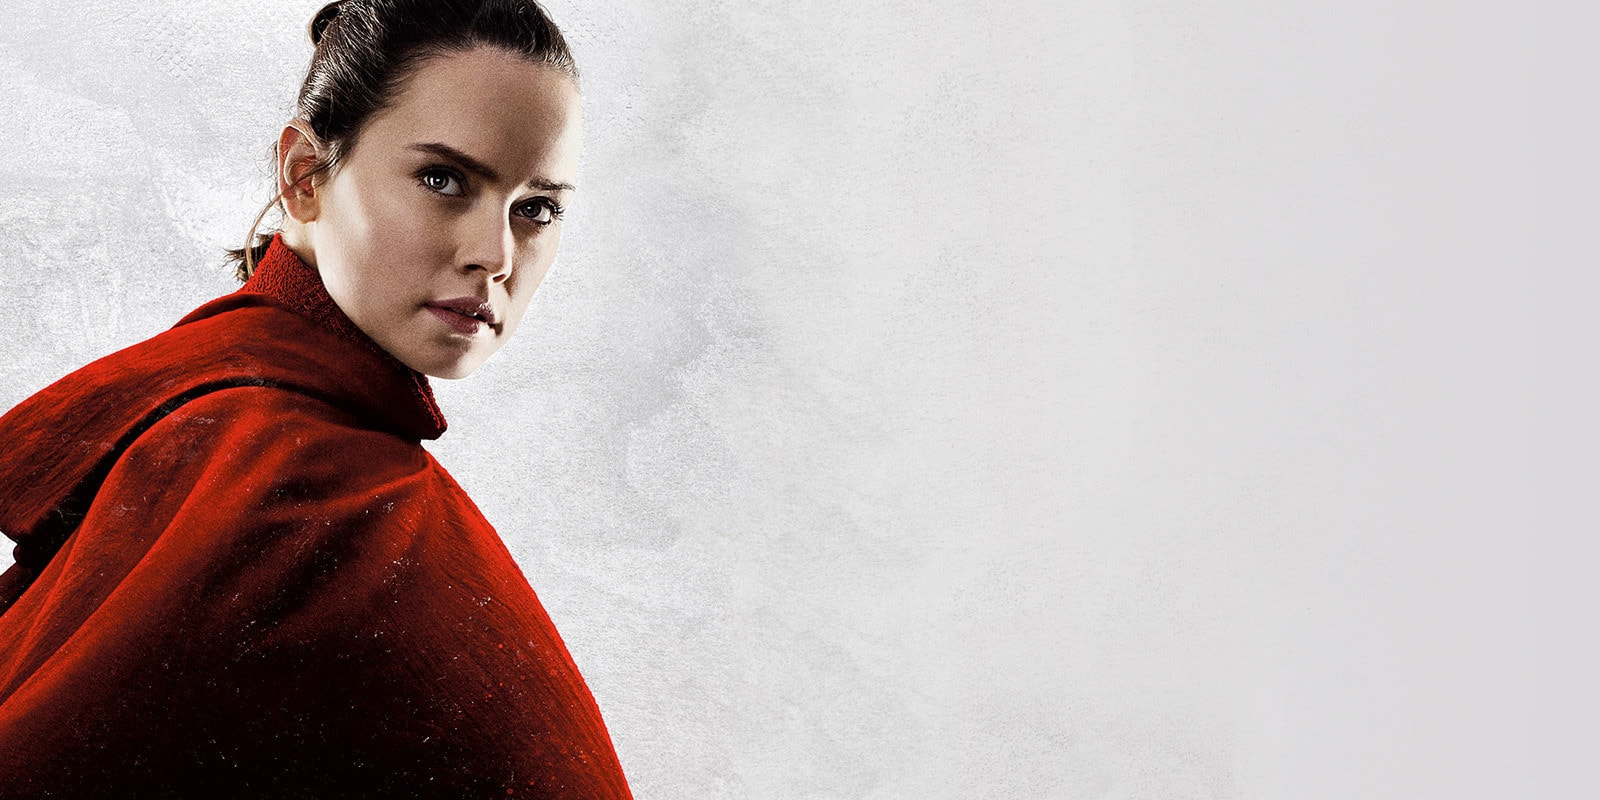 CZ - Star Wars The Last Jedi - Flex-Content Hero Object - Synopsis